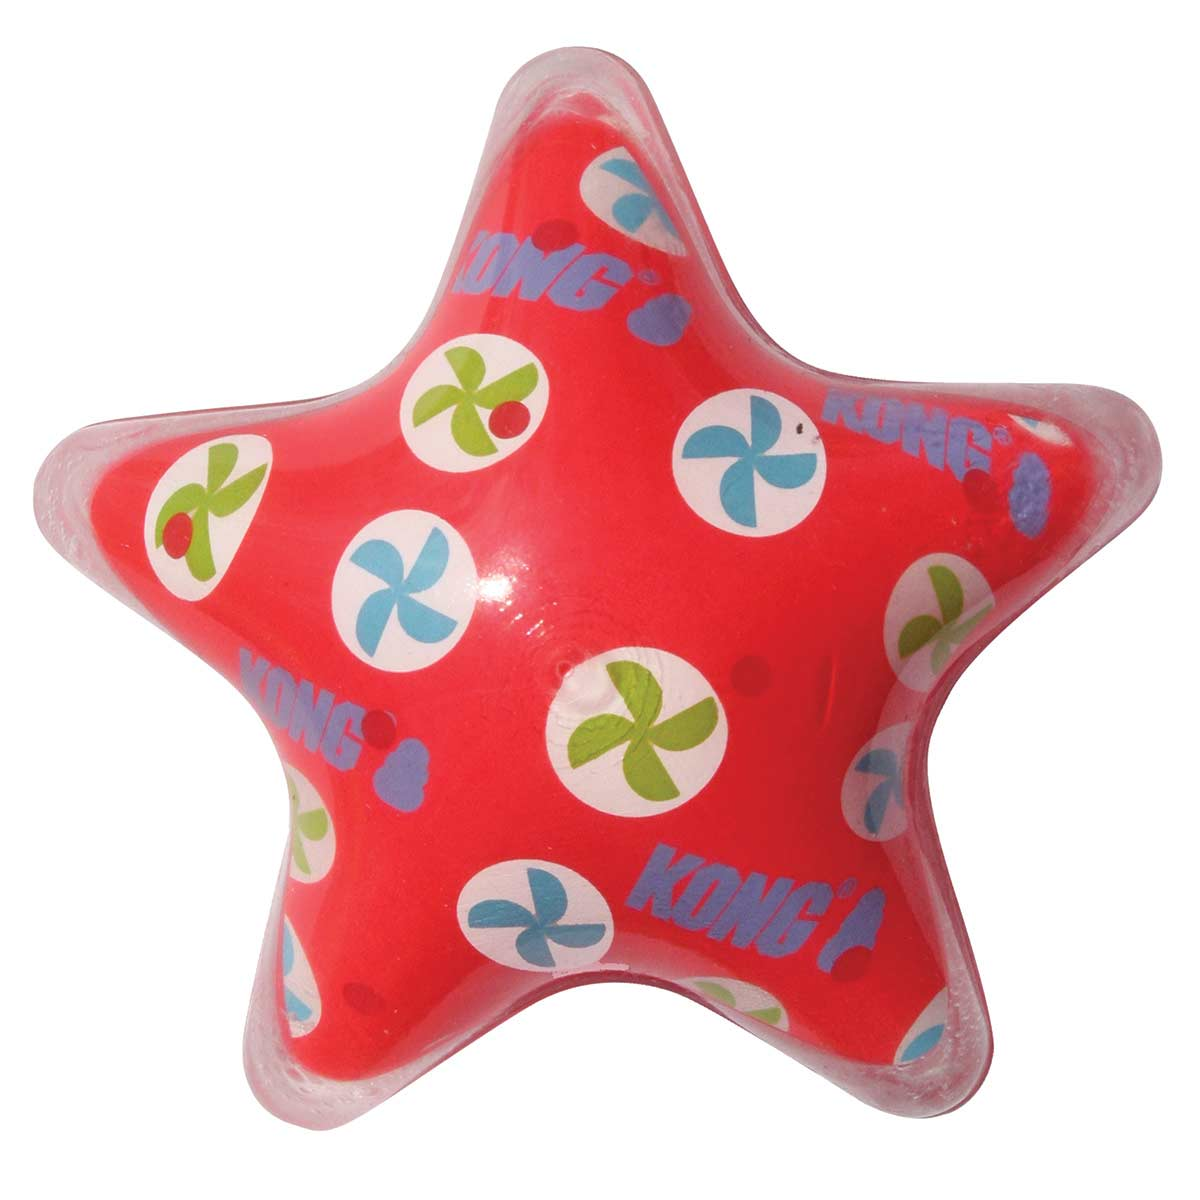 Large KONG Xpressions Star Bounce Toy for Dogs